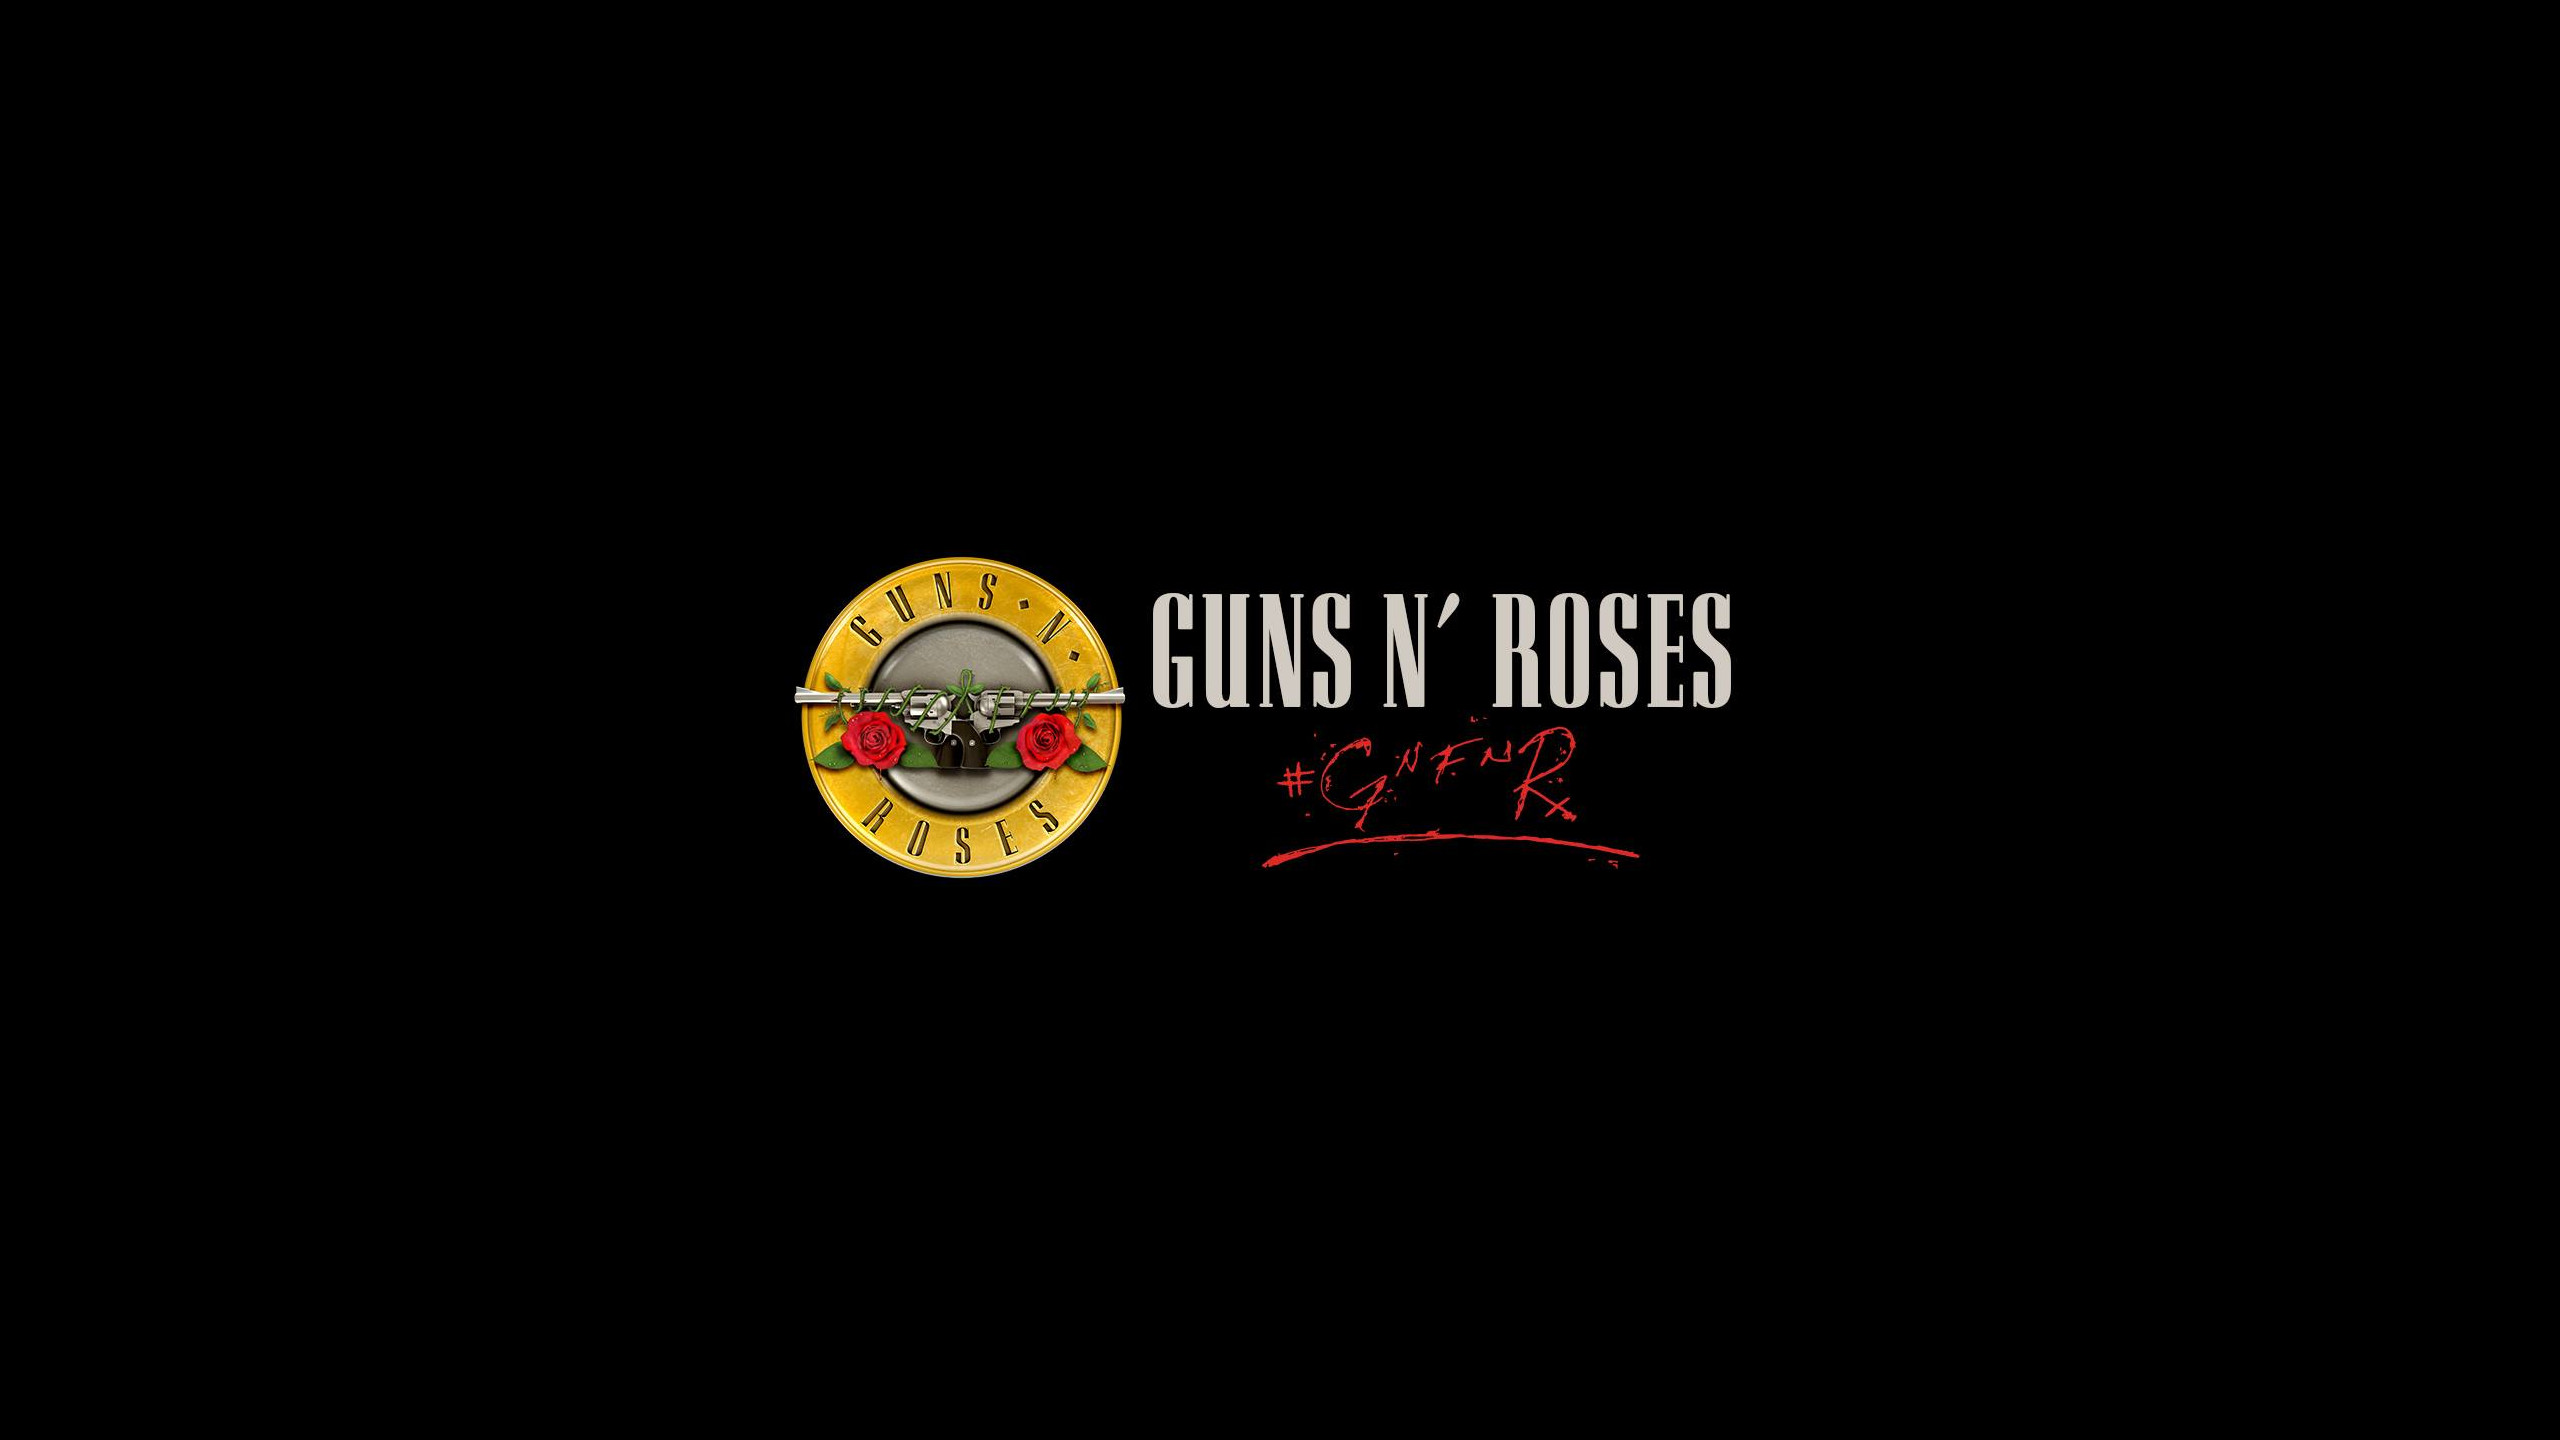 Iphone X Wallpaper 4k Live Guns N Roses Wallpapers 70 Images